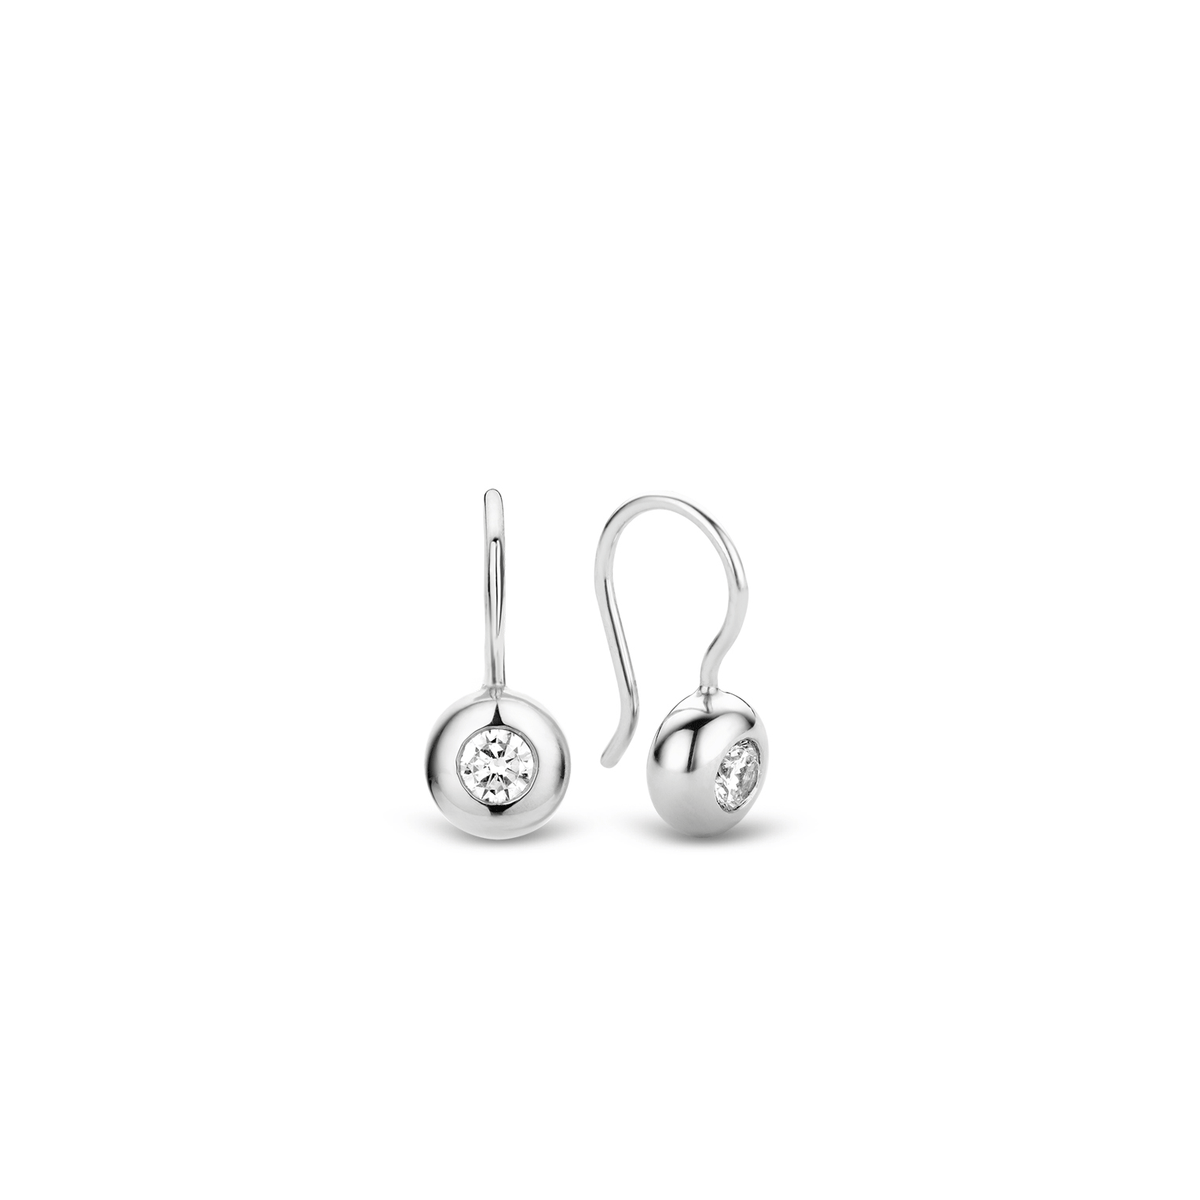 TI SENTO - Milano Earrings 7757ZI